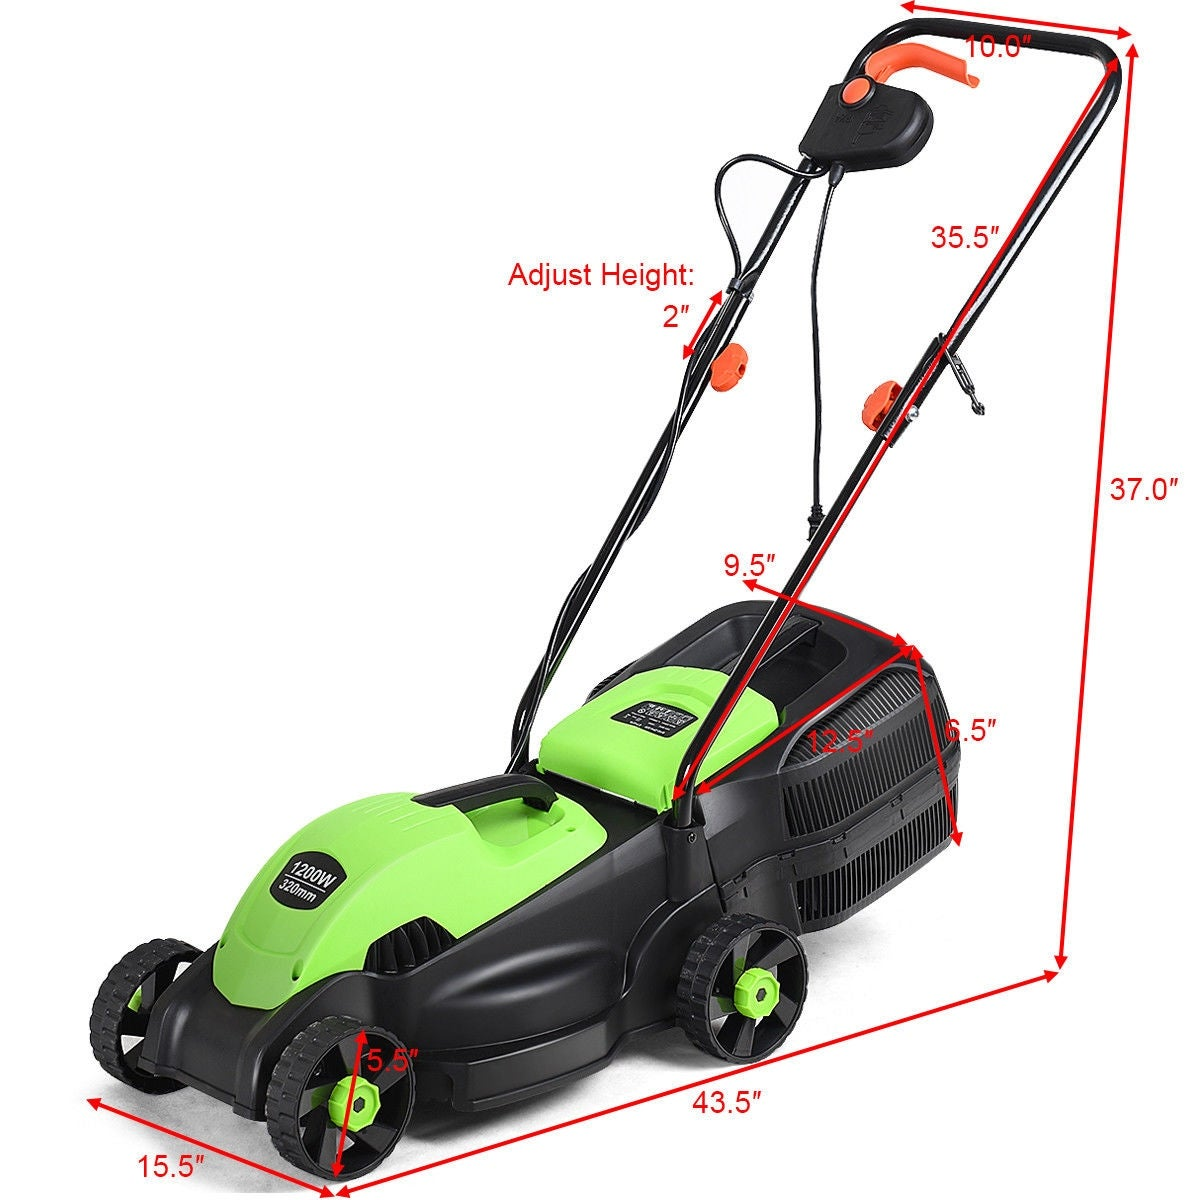 Costway 12 Amp 14 Inch Electric Push Lawn Corded Mower With Grass Bag Overstock 21248913